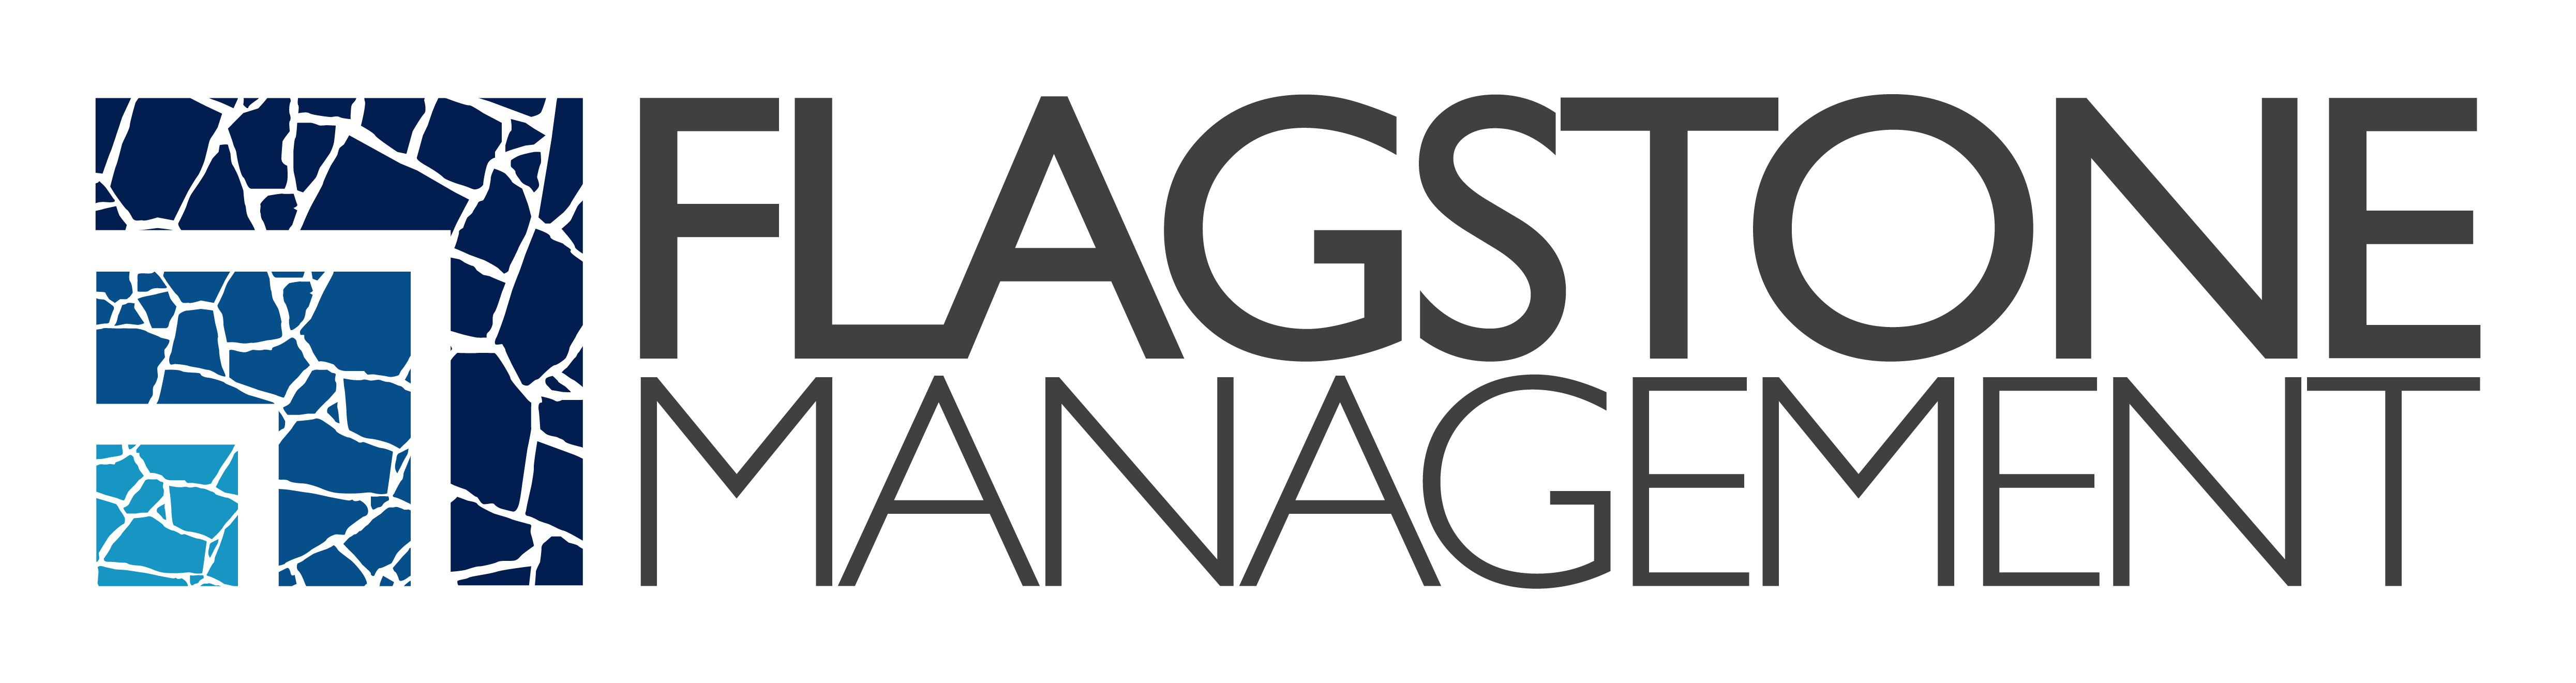 Flagstone Management